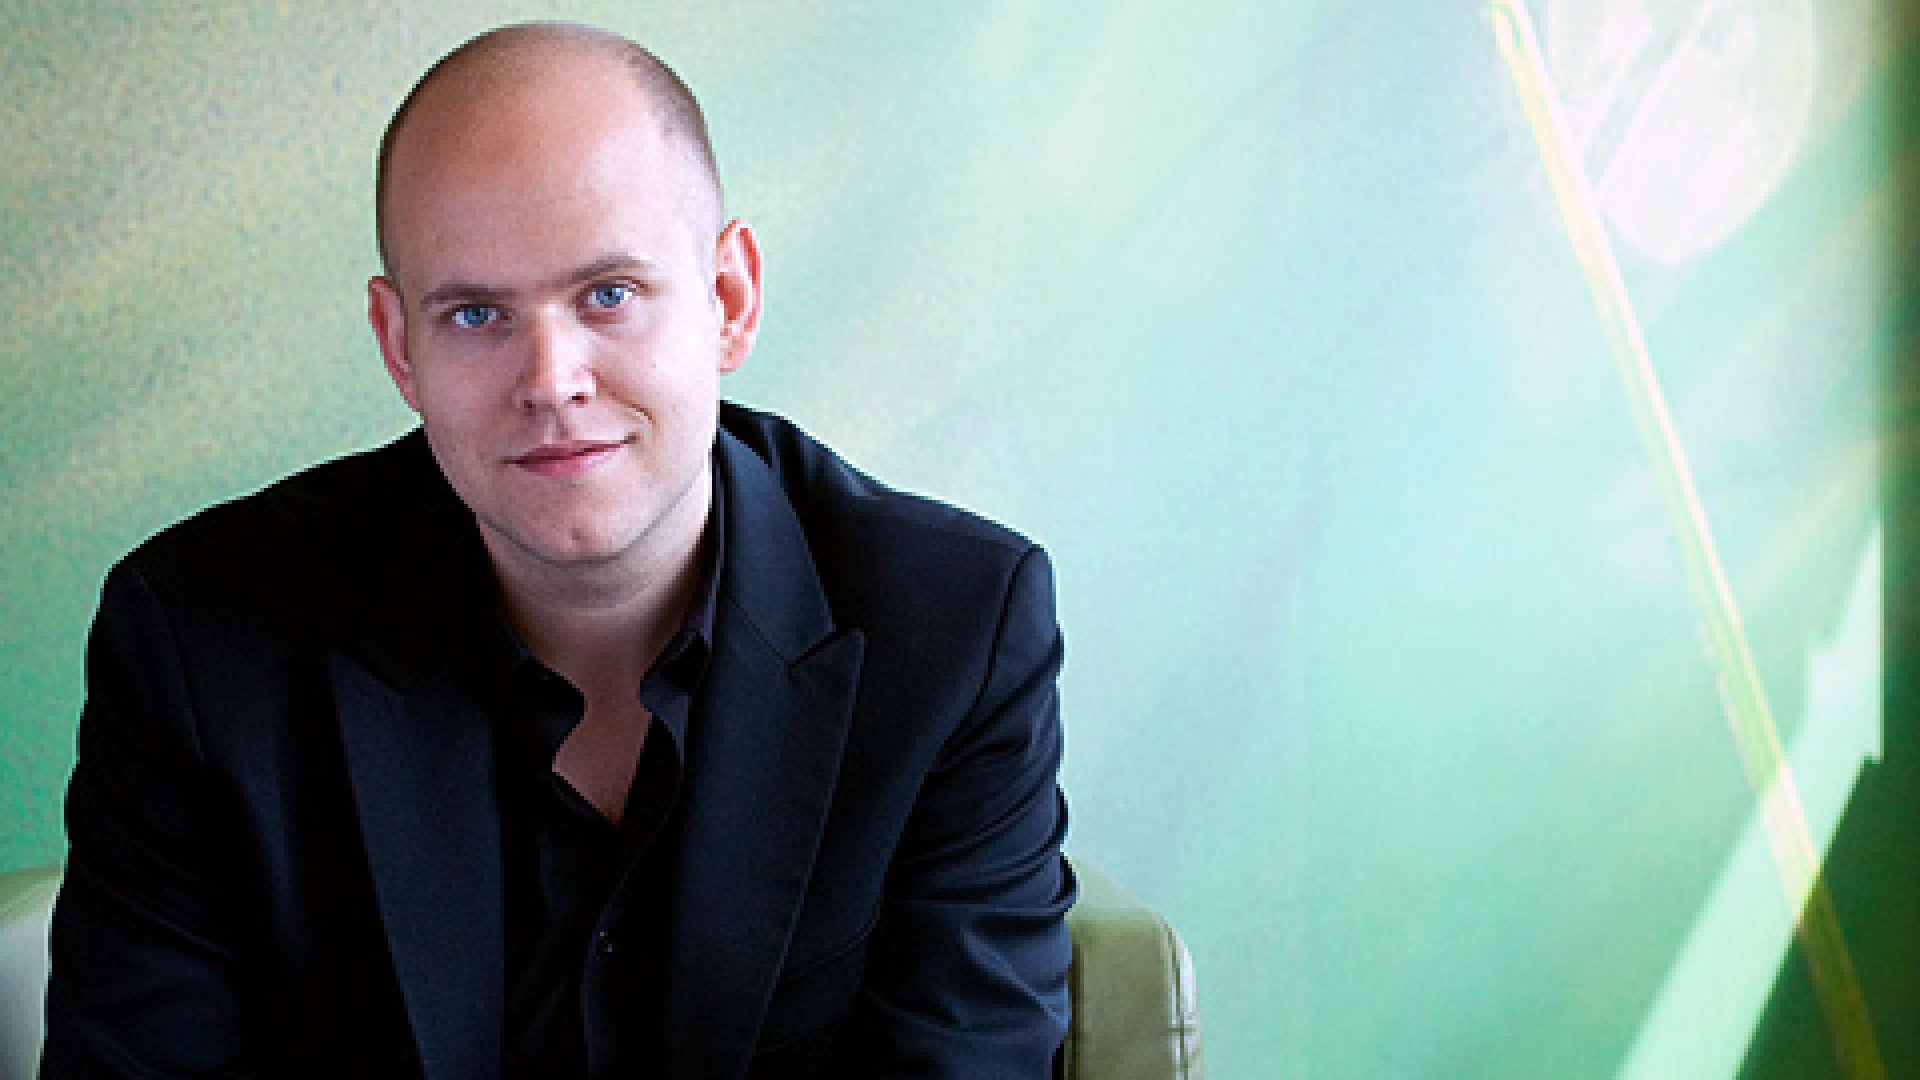 Daniel Ek, founder of Spotify